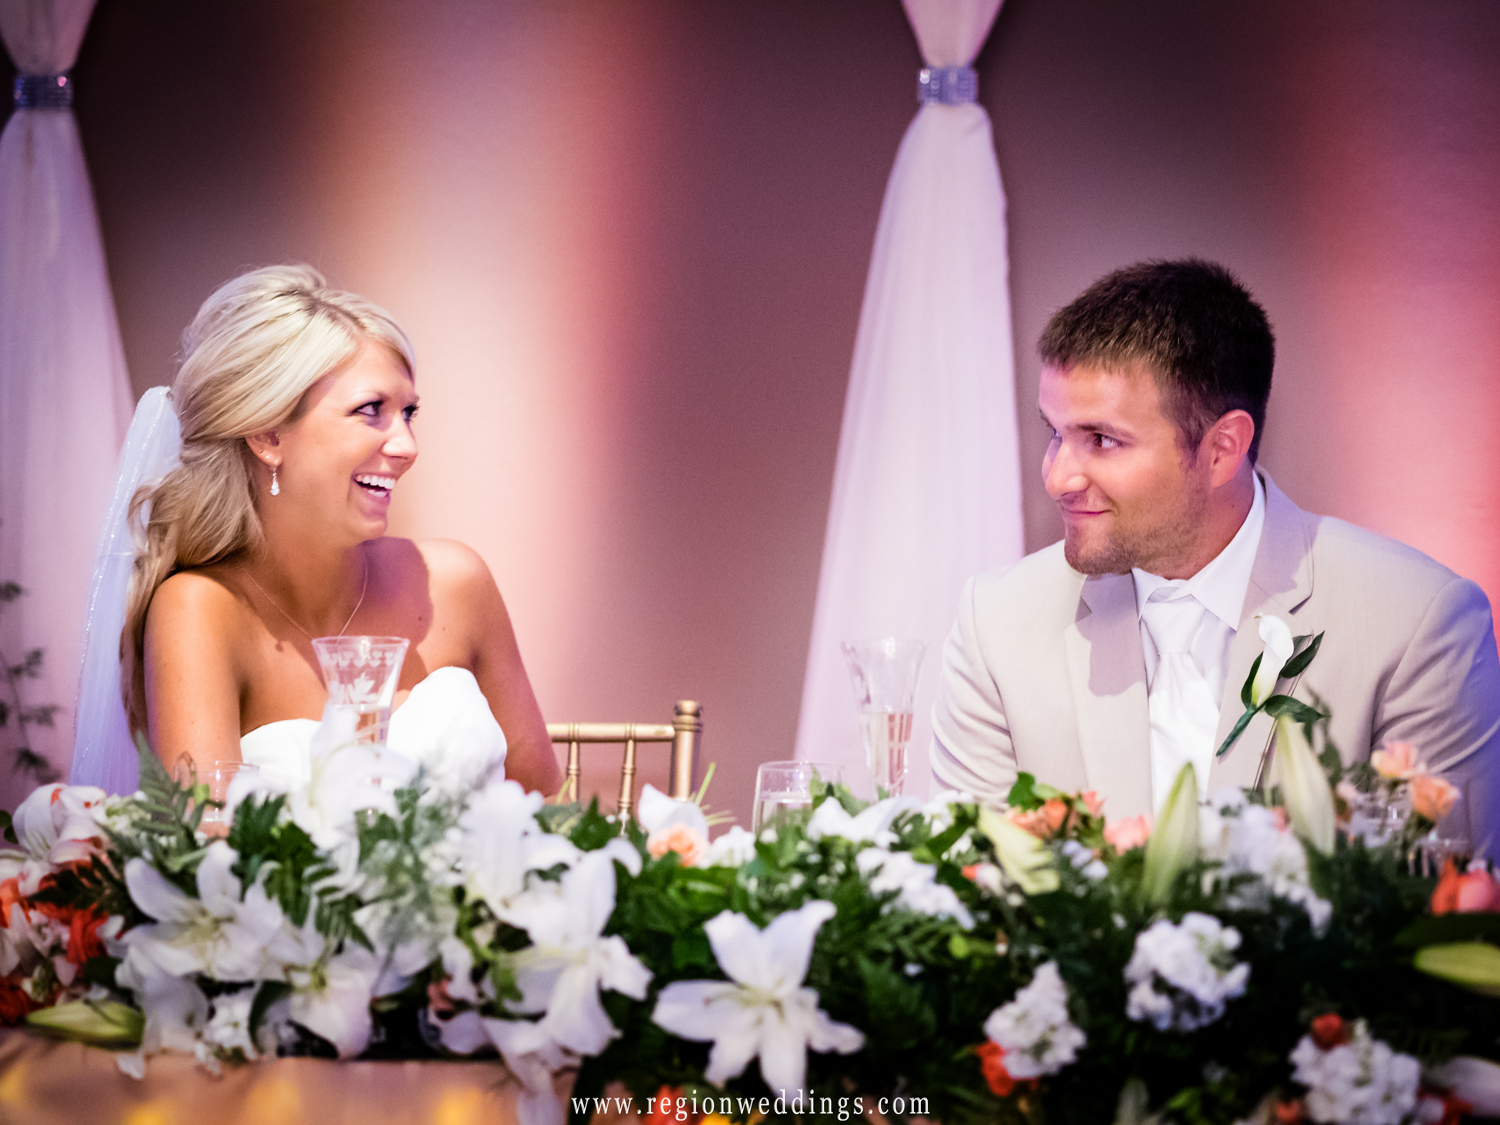 The bride and groom share a knowing look at their wedding reception at Aberdeen Manor.